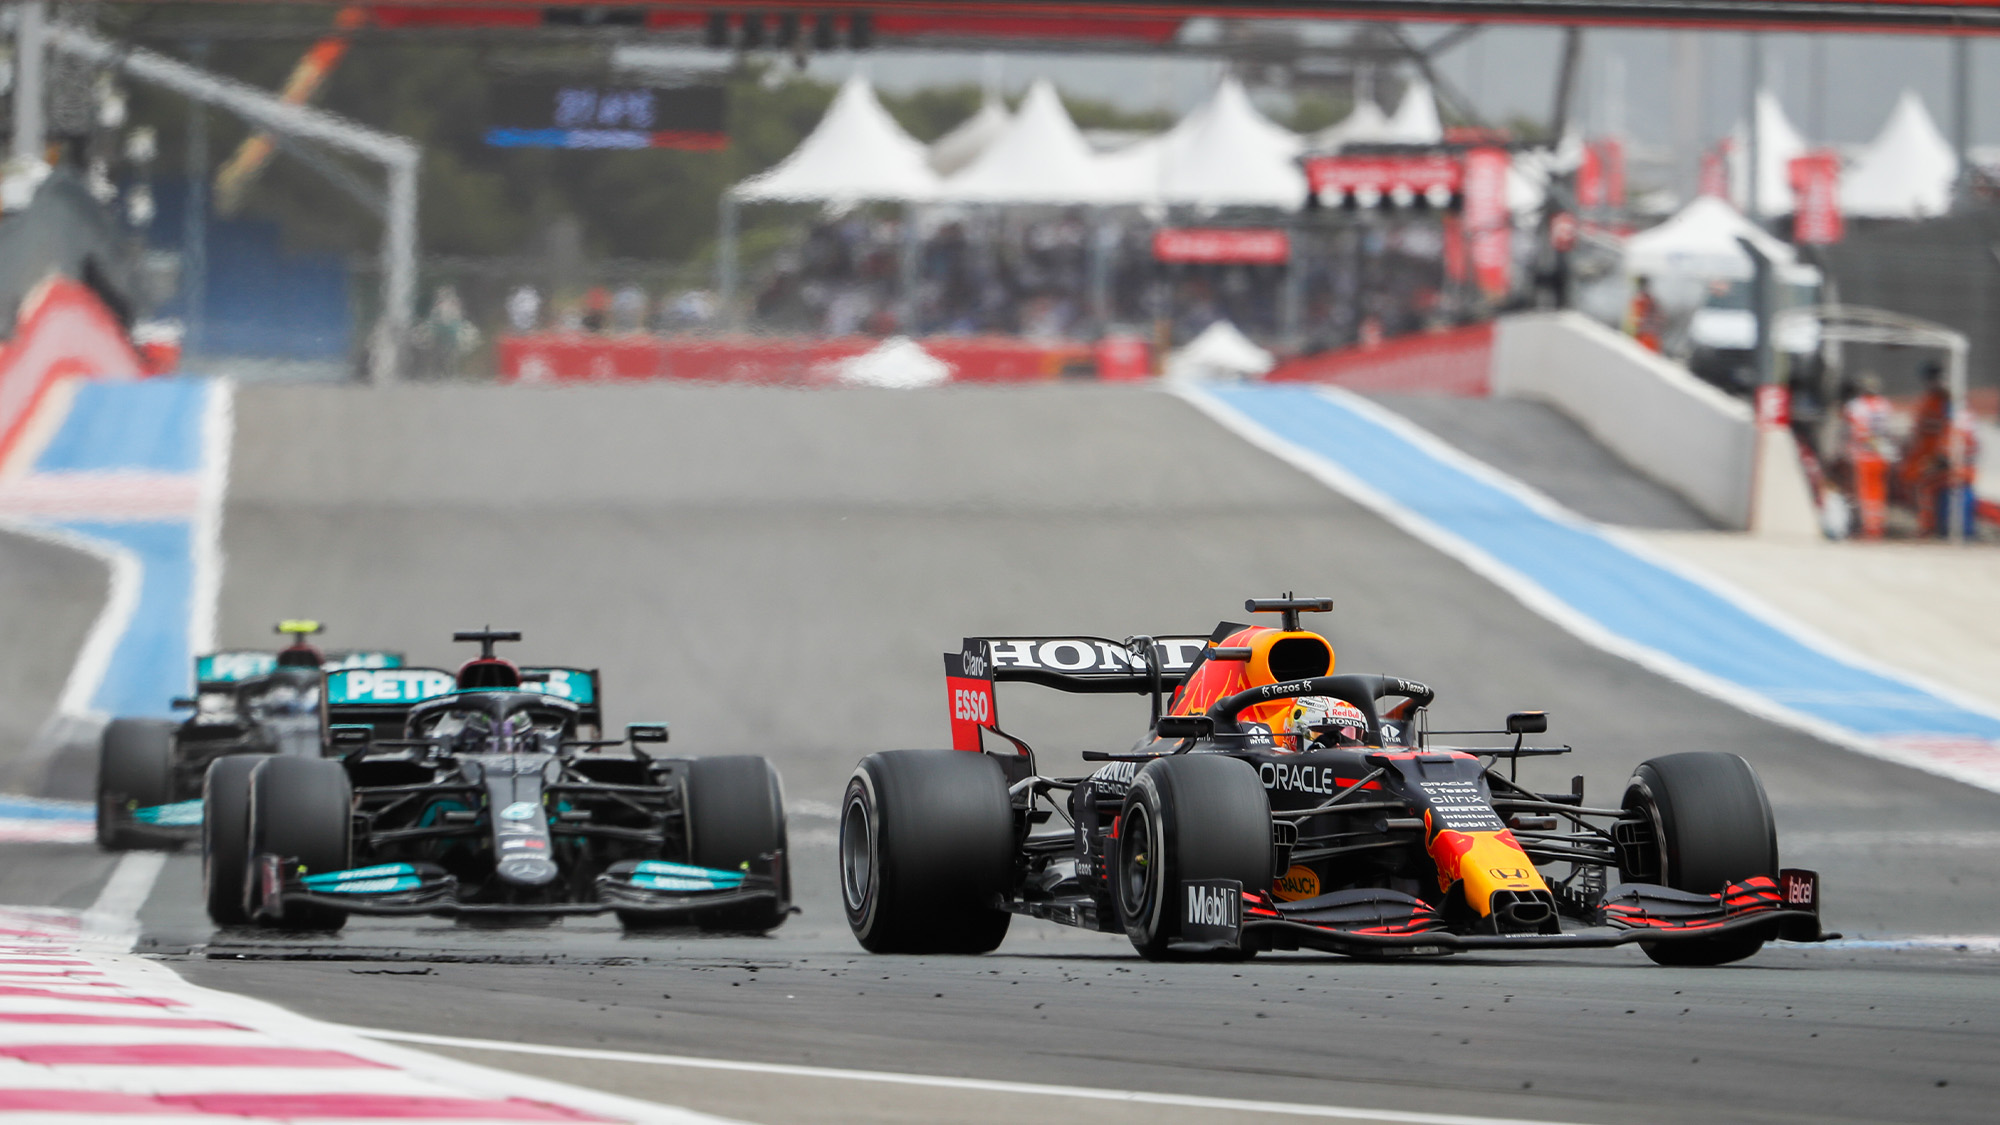 Max Verstappen leads Lewis Hamilton in the 2021 French Grand Prix